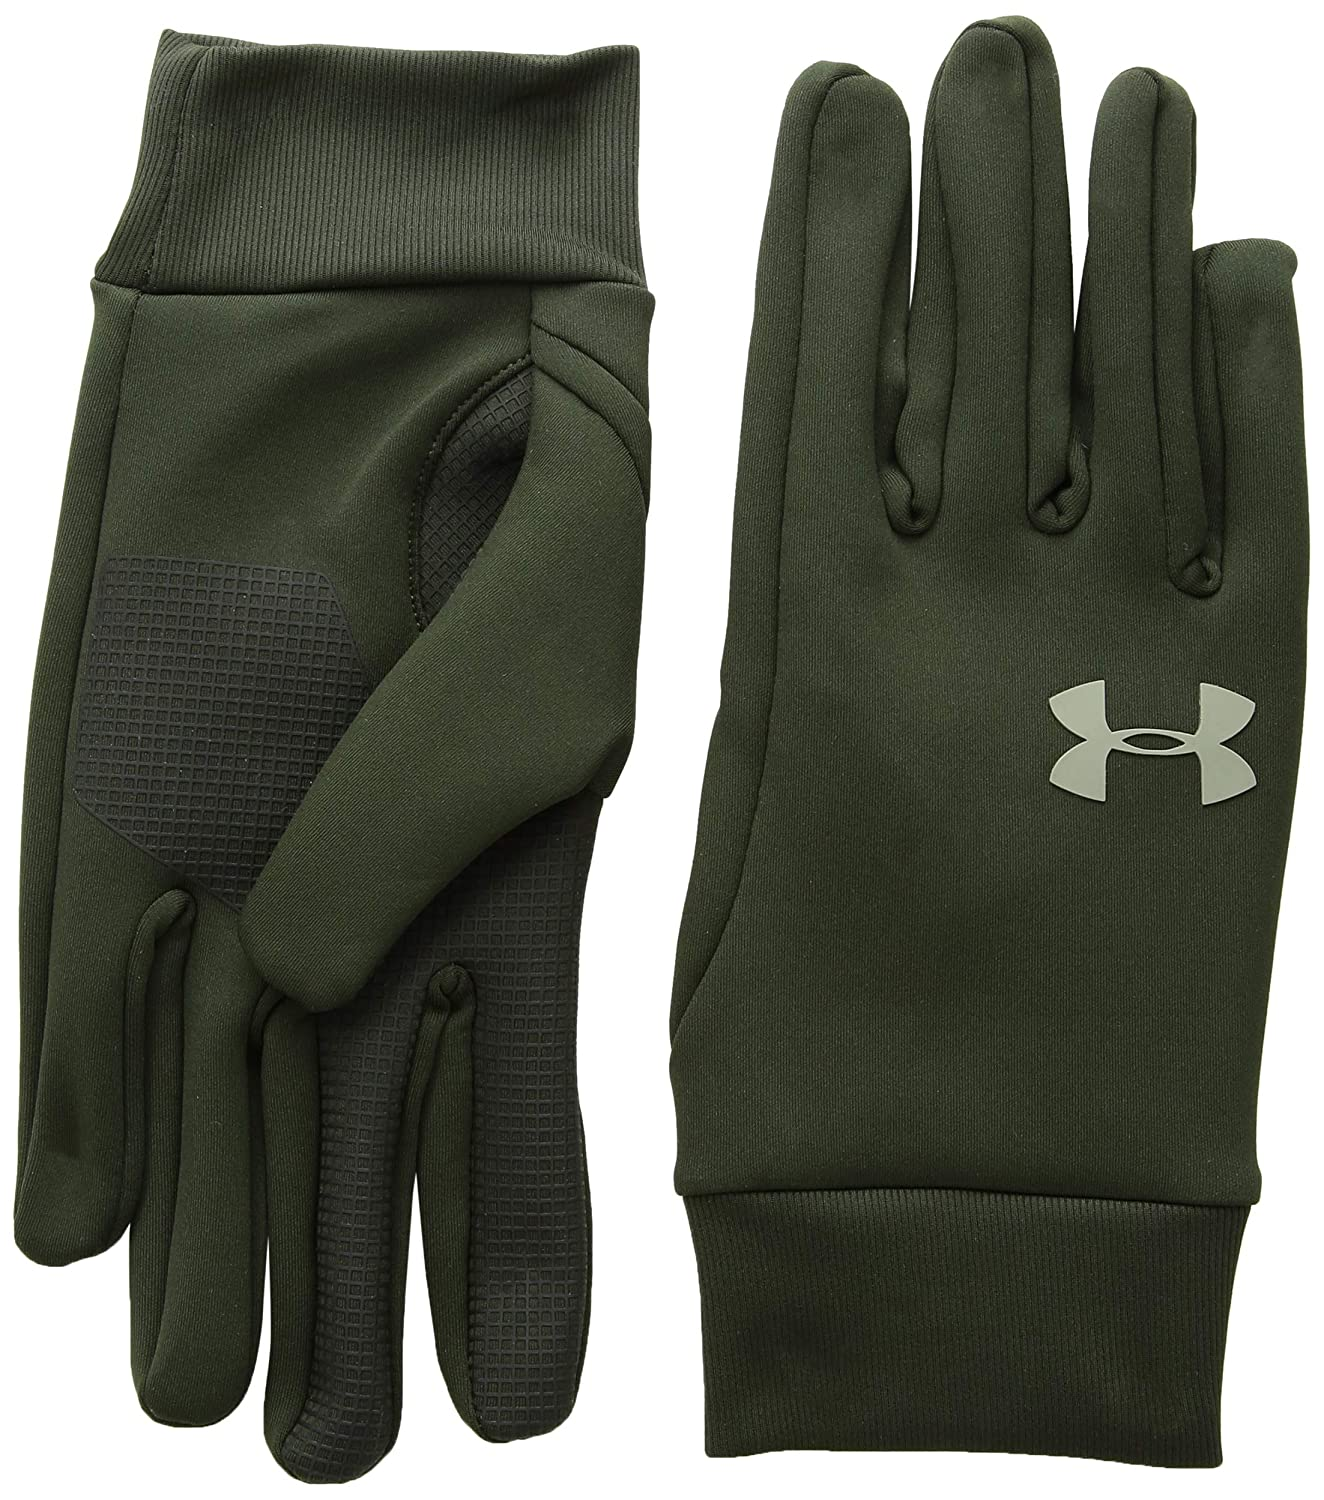 Under Armour Men's Armour Liner 2.0 Under Armour Accessories 1318546